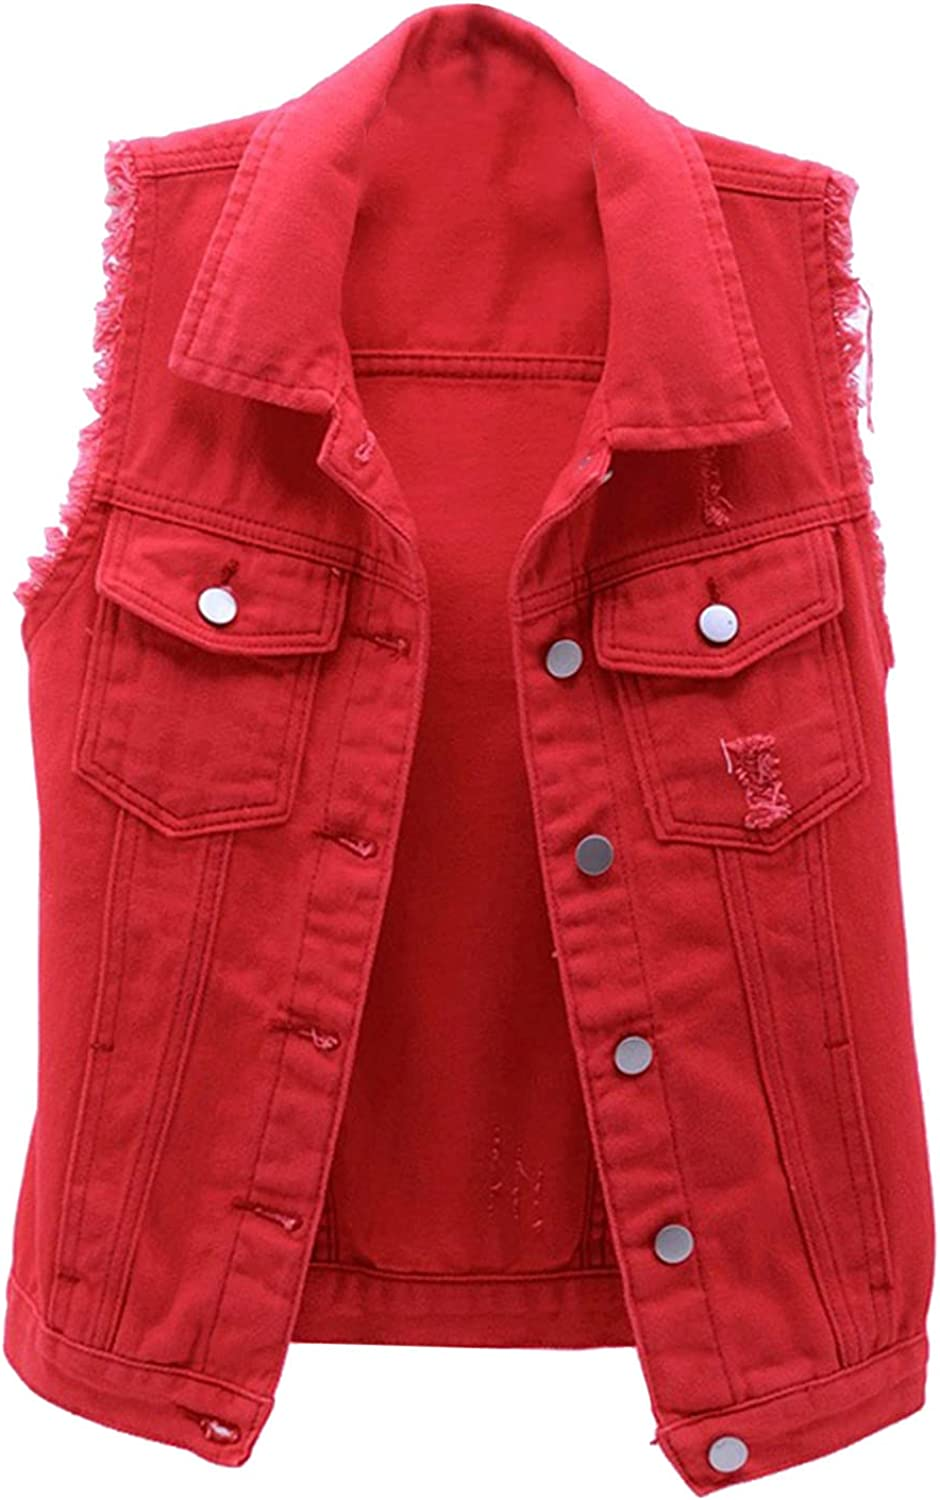 YANH 2021 Women's Fall/Winter Lapel Sleeveless Denim Vests, Solid Color Button Pocket Coats Tops, Casual Jean Jackets